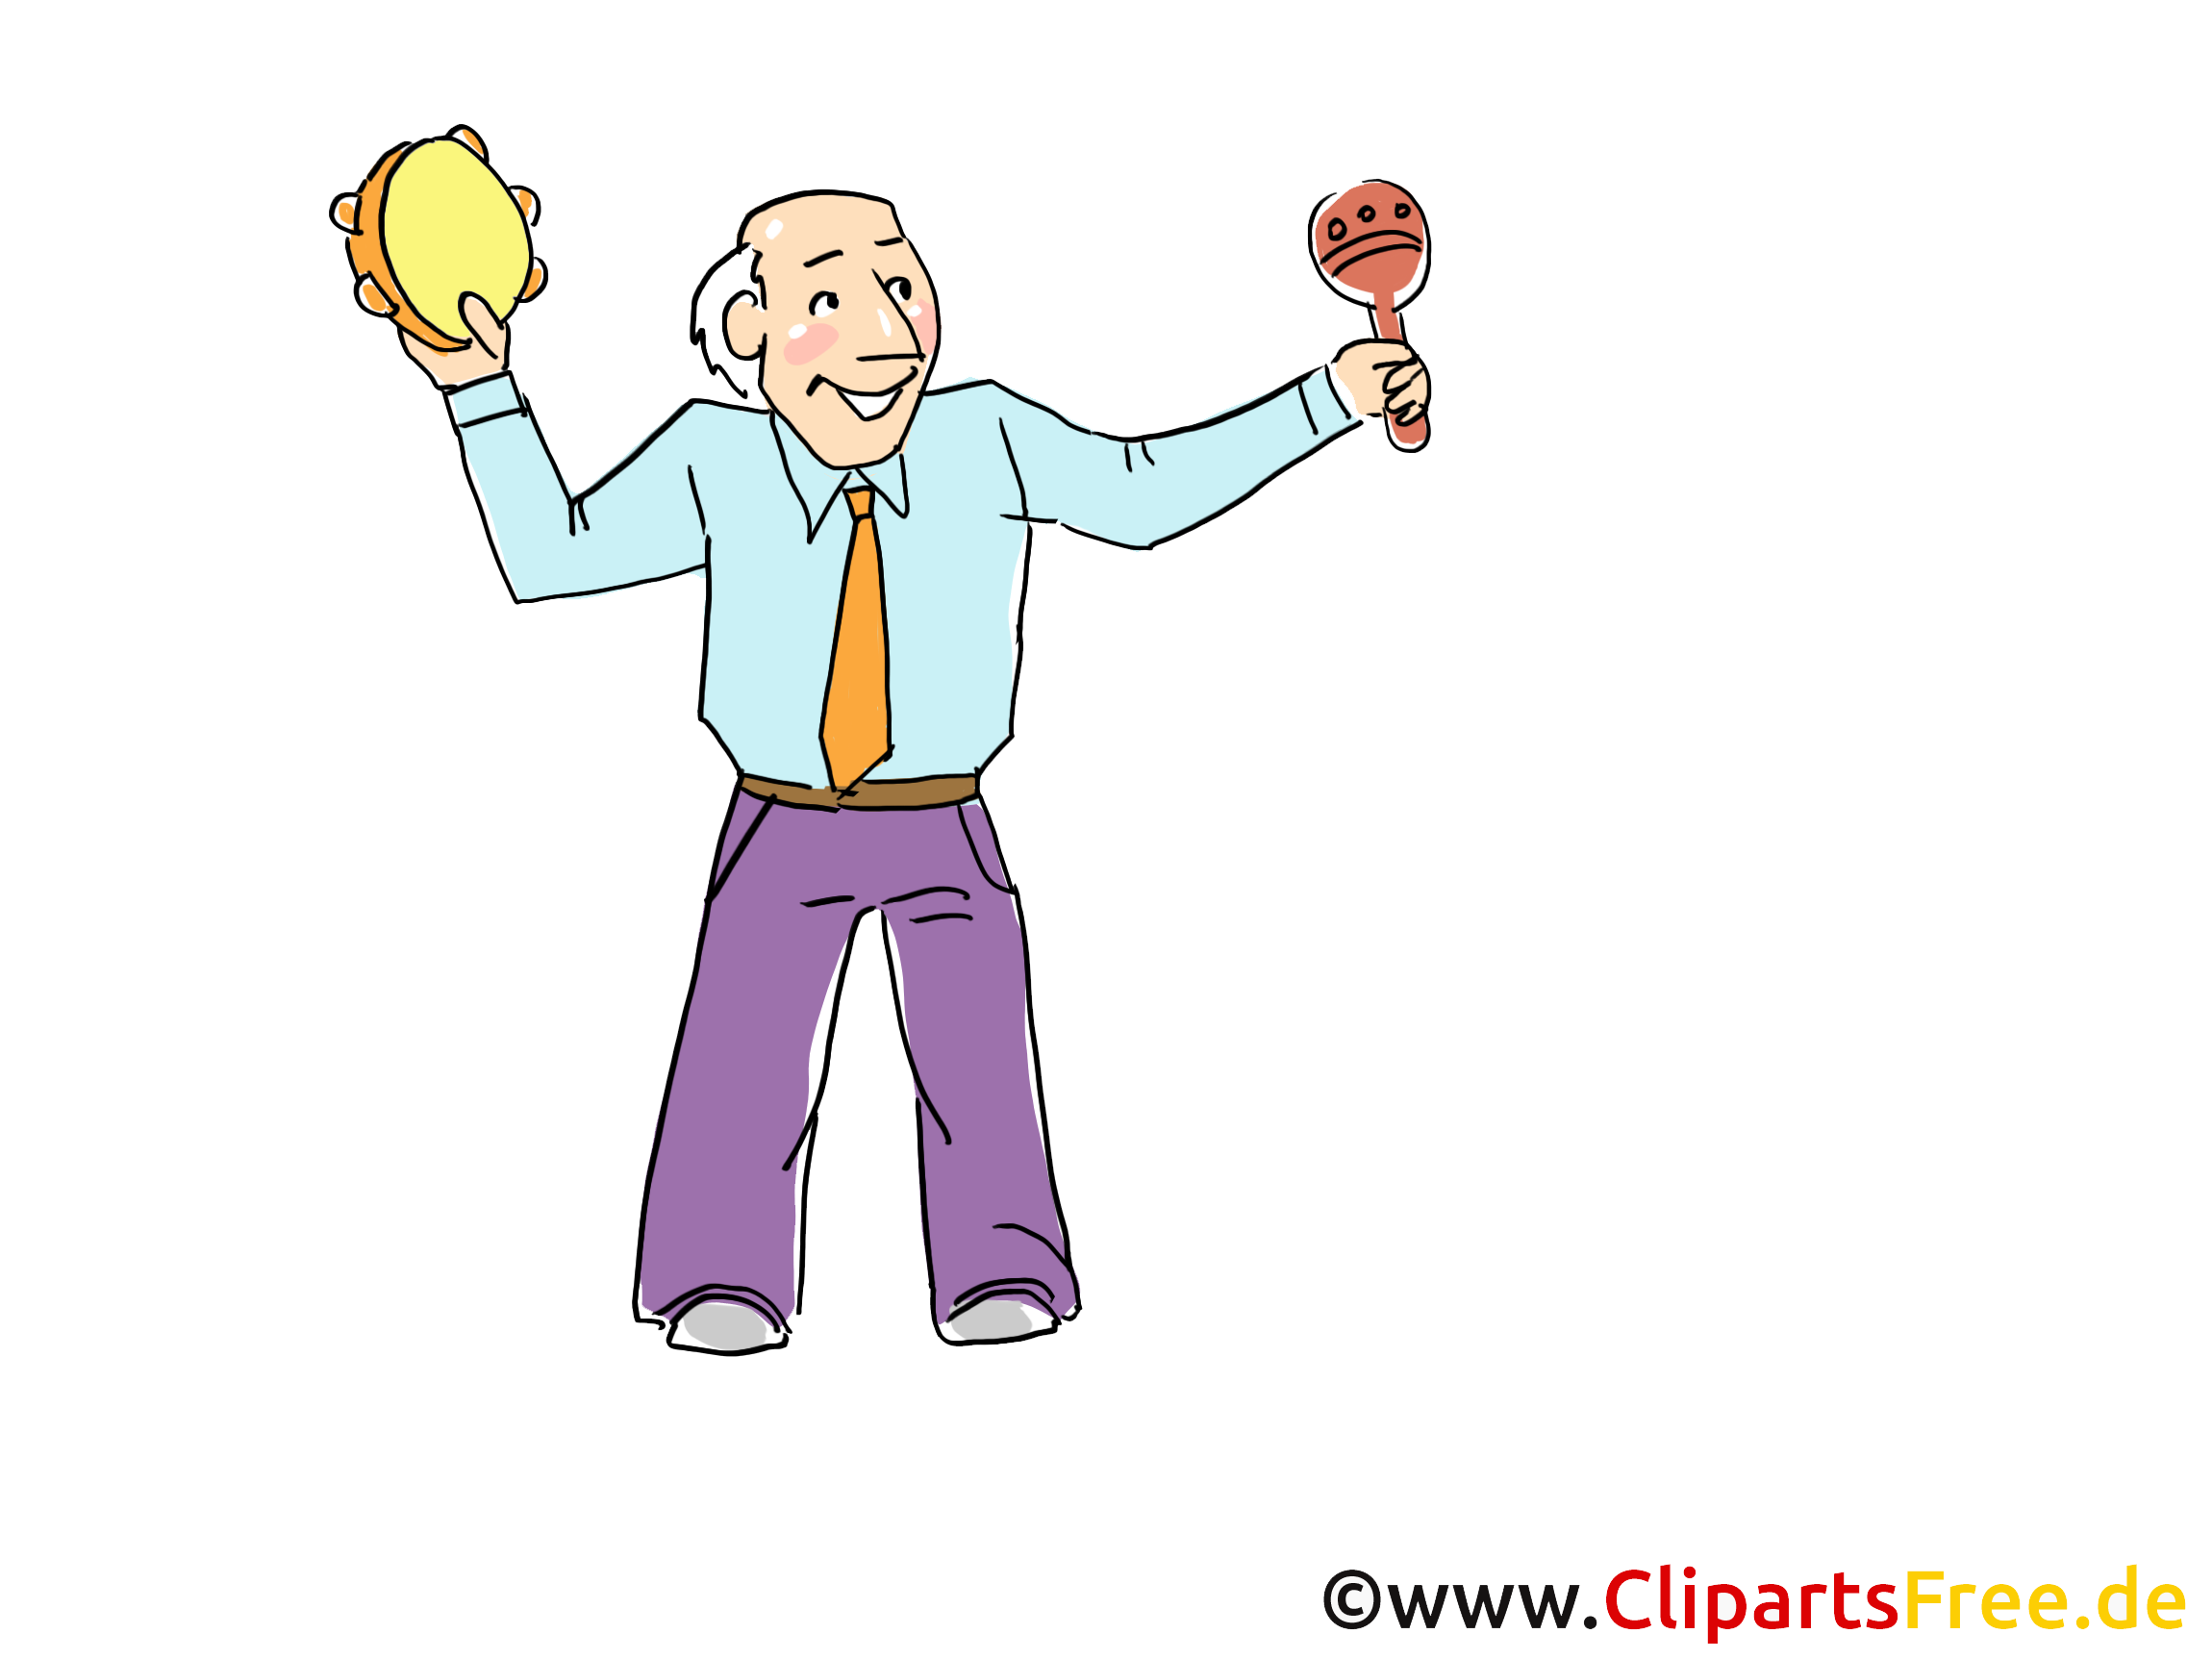 Clipart Spass, Party, Feier